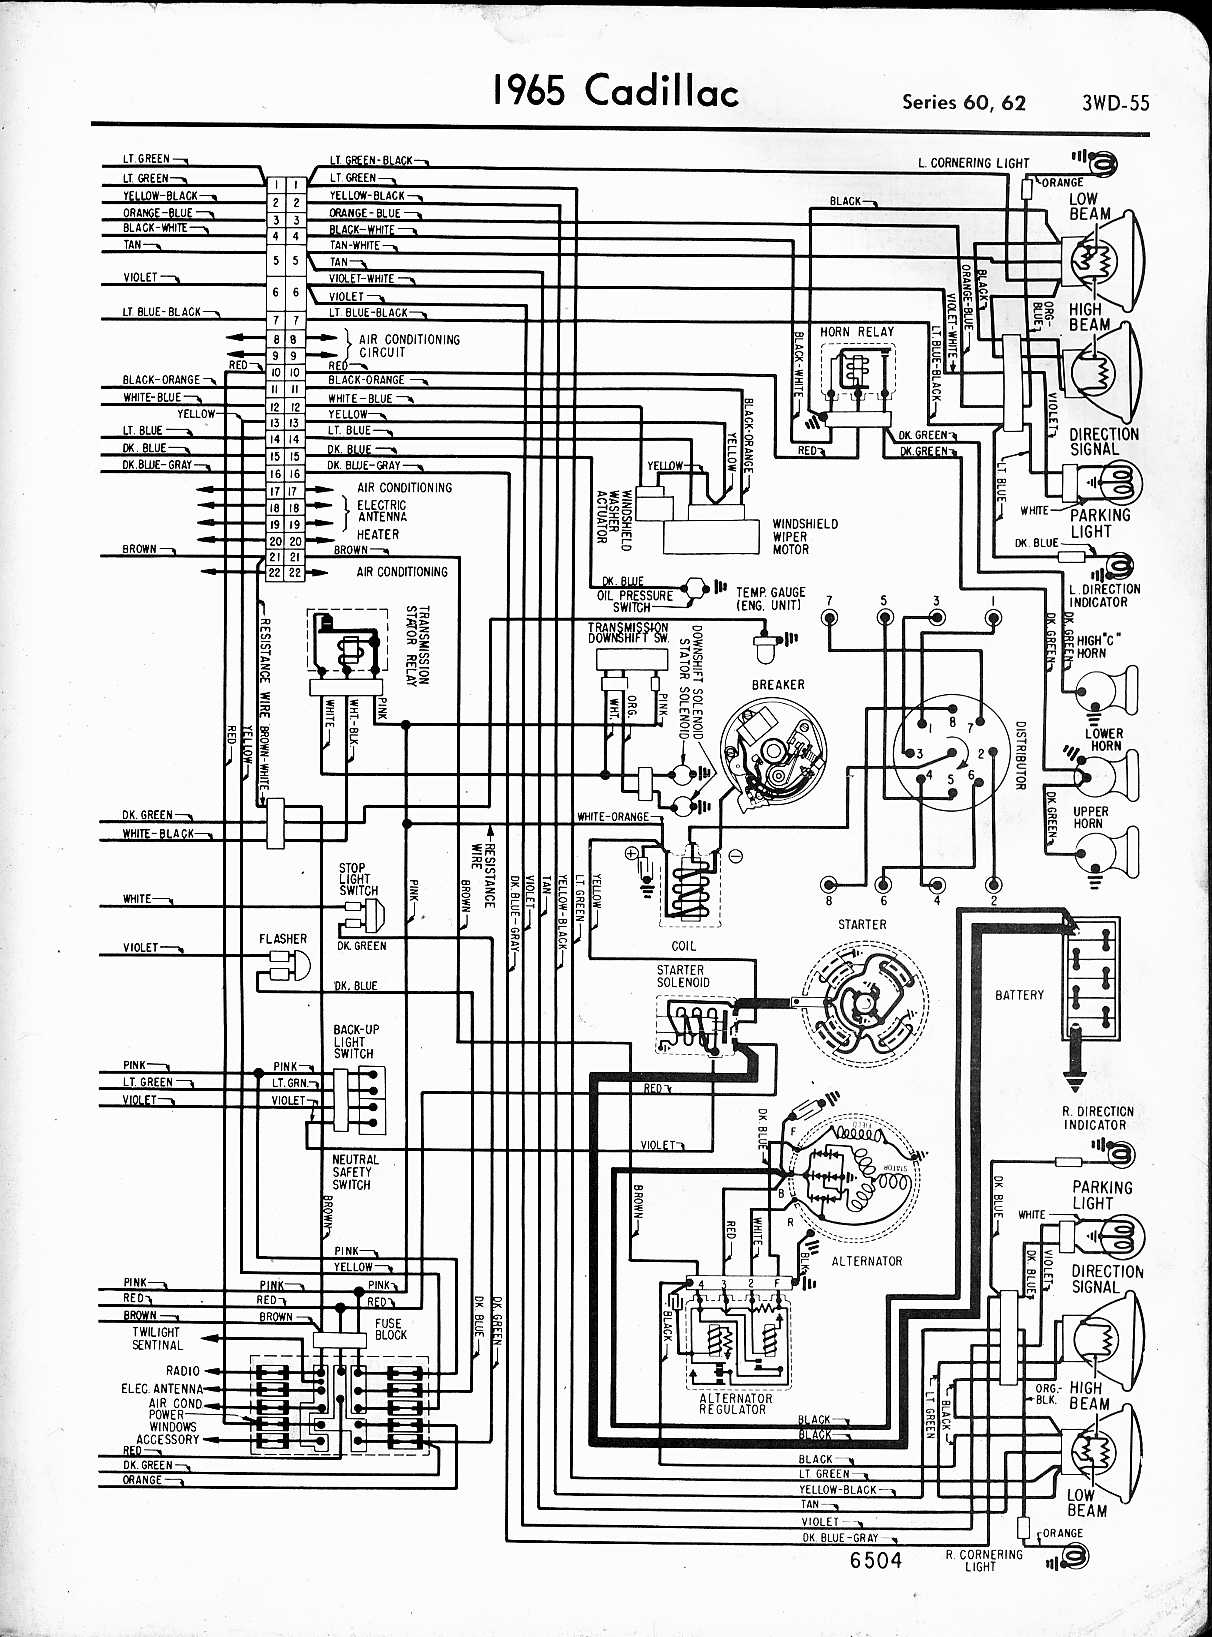 1999 cadillac escalade wiring diagram car wiring diagrams explained u2022 rh ethermag co 2006 Cadillac Escalade ESV 2006 Cadillac Escalade ESV